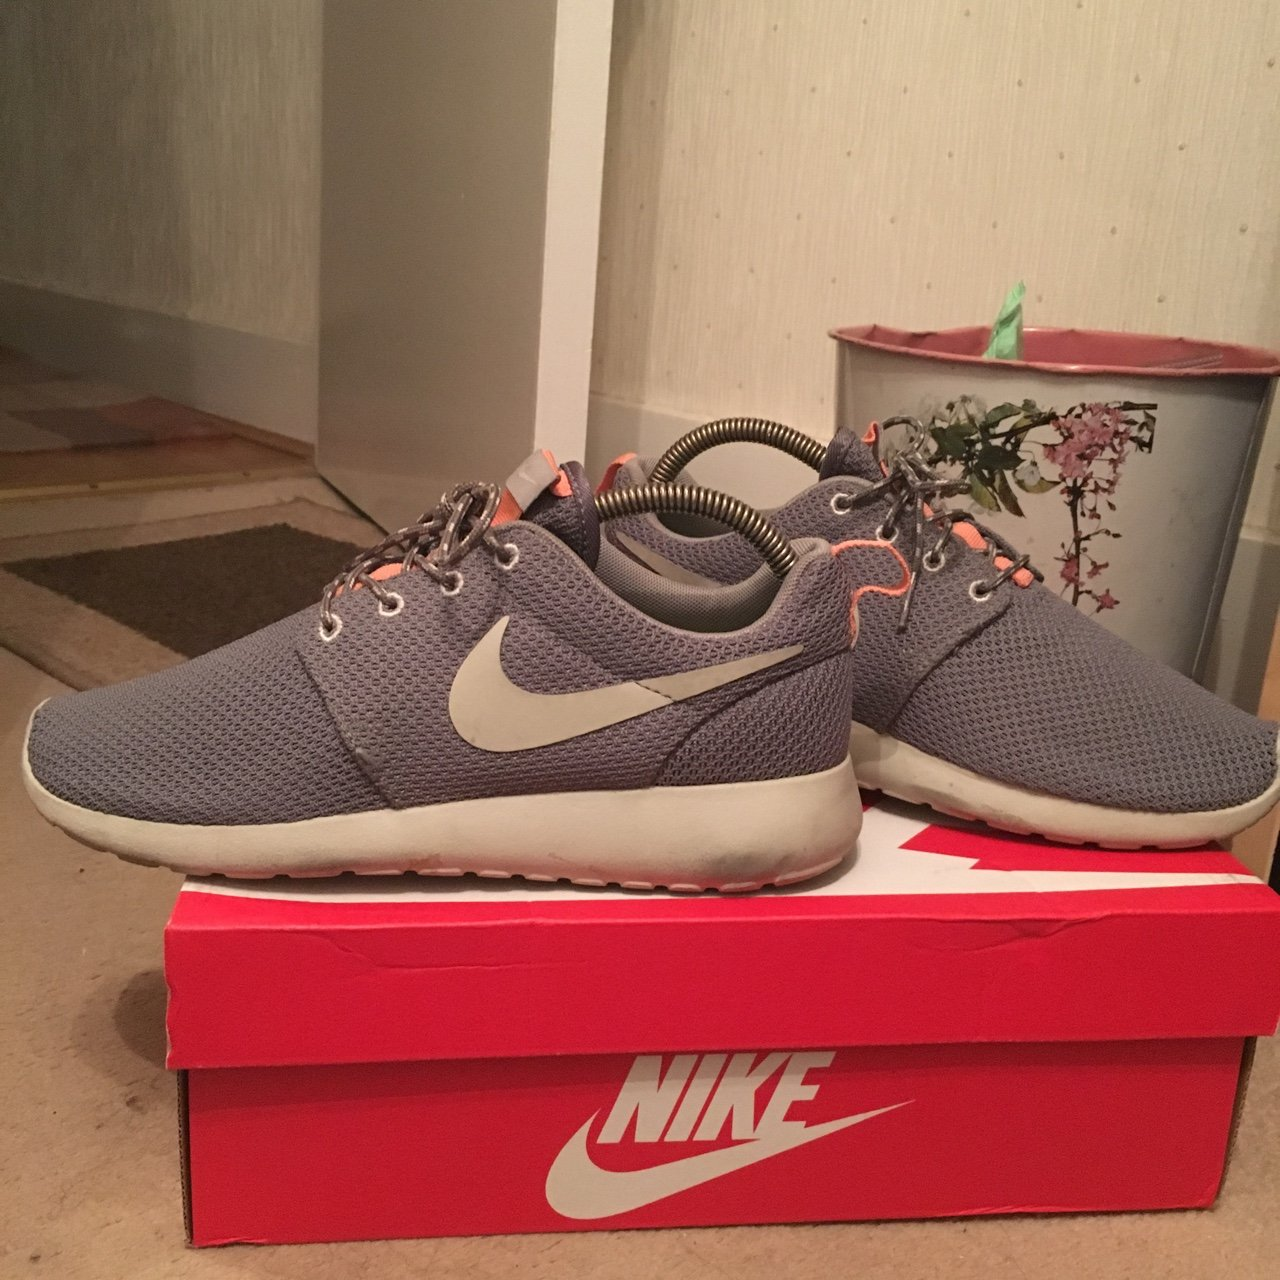 91d23c105af7 Nike Roshe trainers in grey. Size 5 Uk. Worn a couple of and - Depop